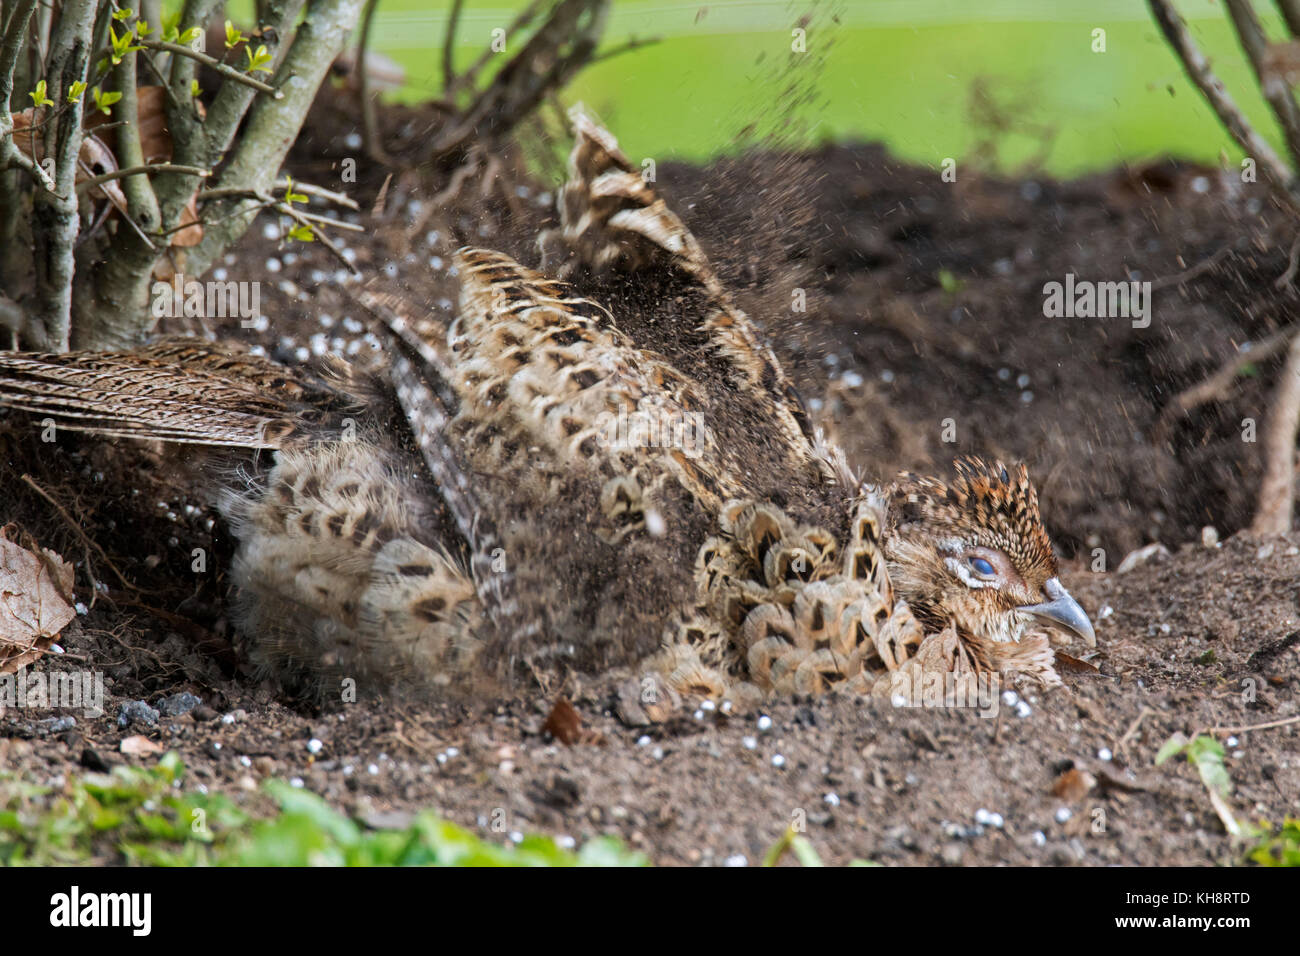 Common pheasant / Ring-necked pheasant (Phasianus colchicus) hen taking sand bath / dust bathing in spring - Stock Image